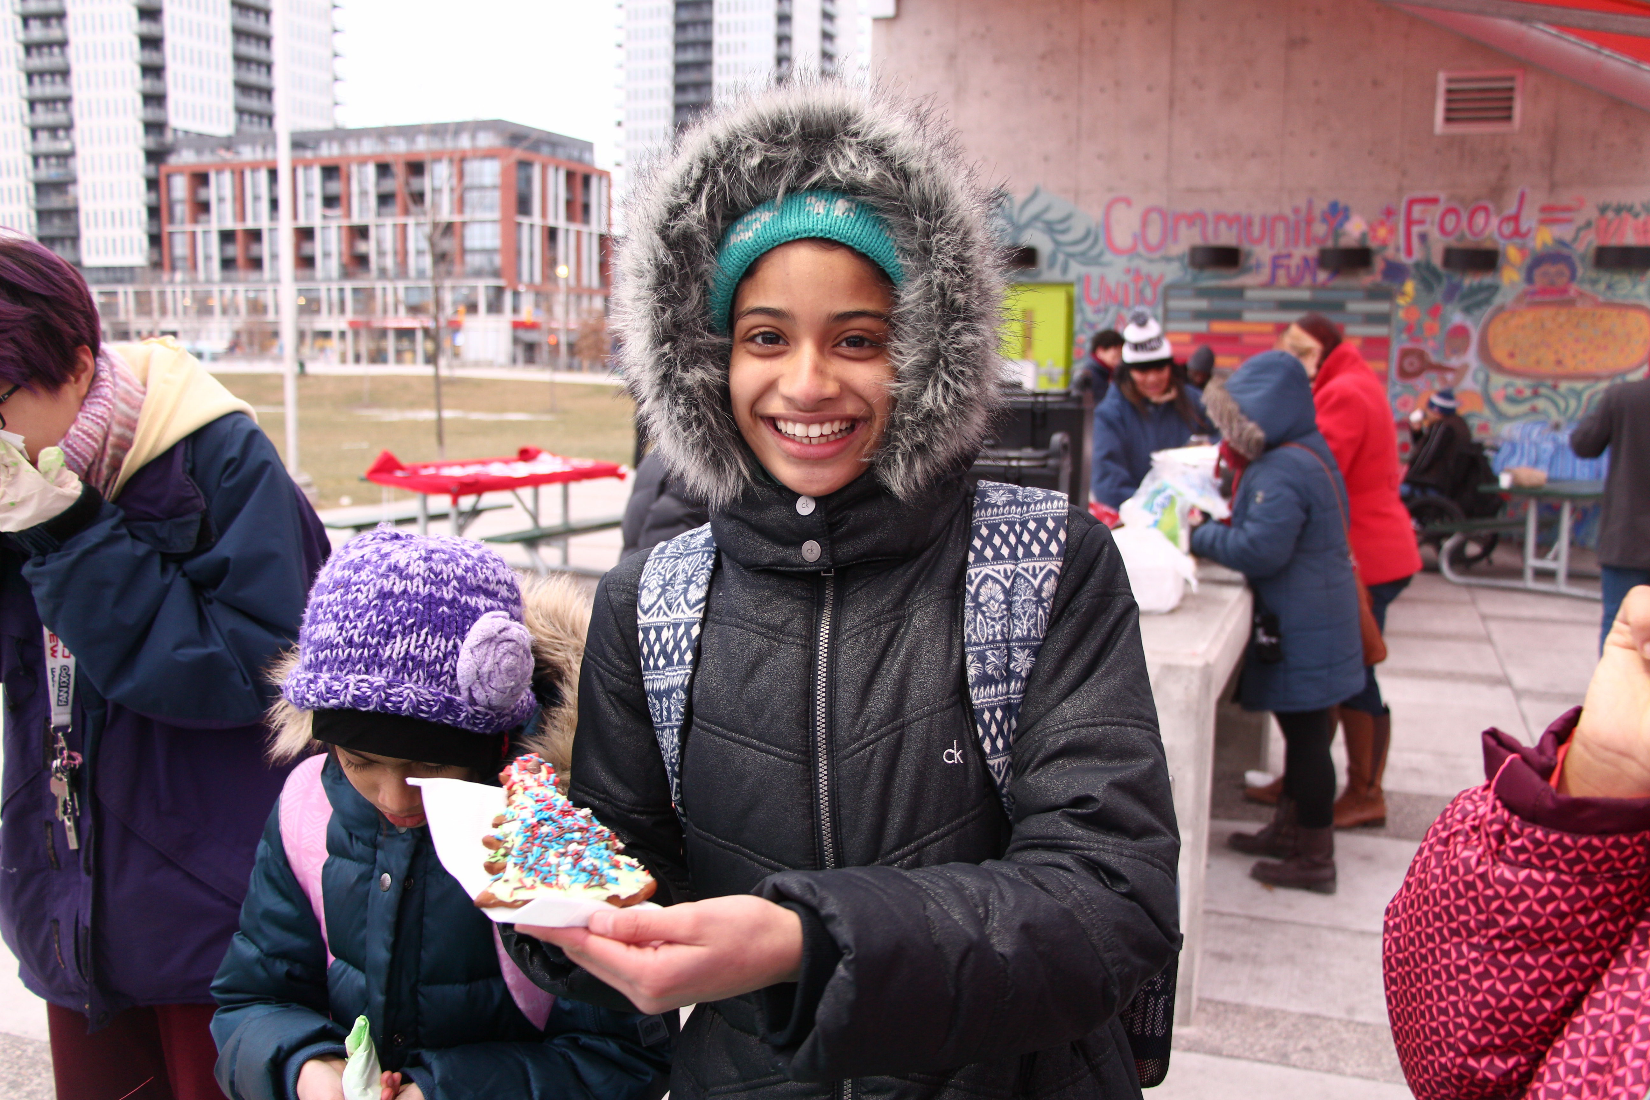 A girl shows off her decorated gingerbread cookie. With festivities in the the background.